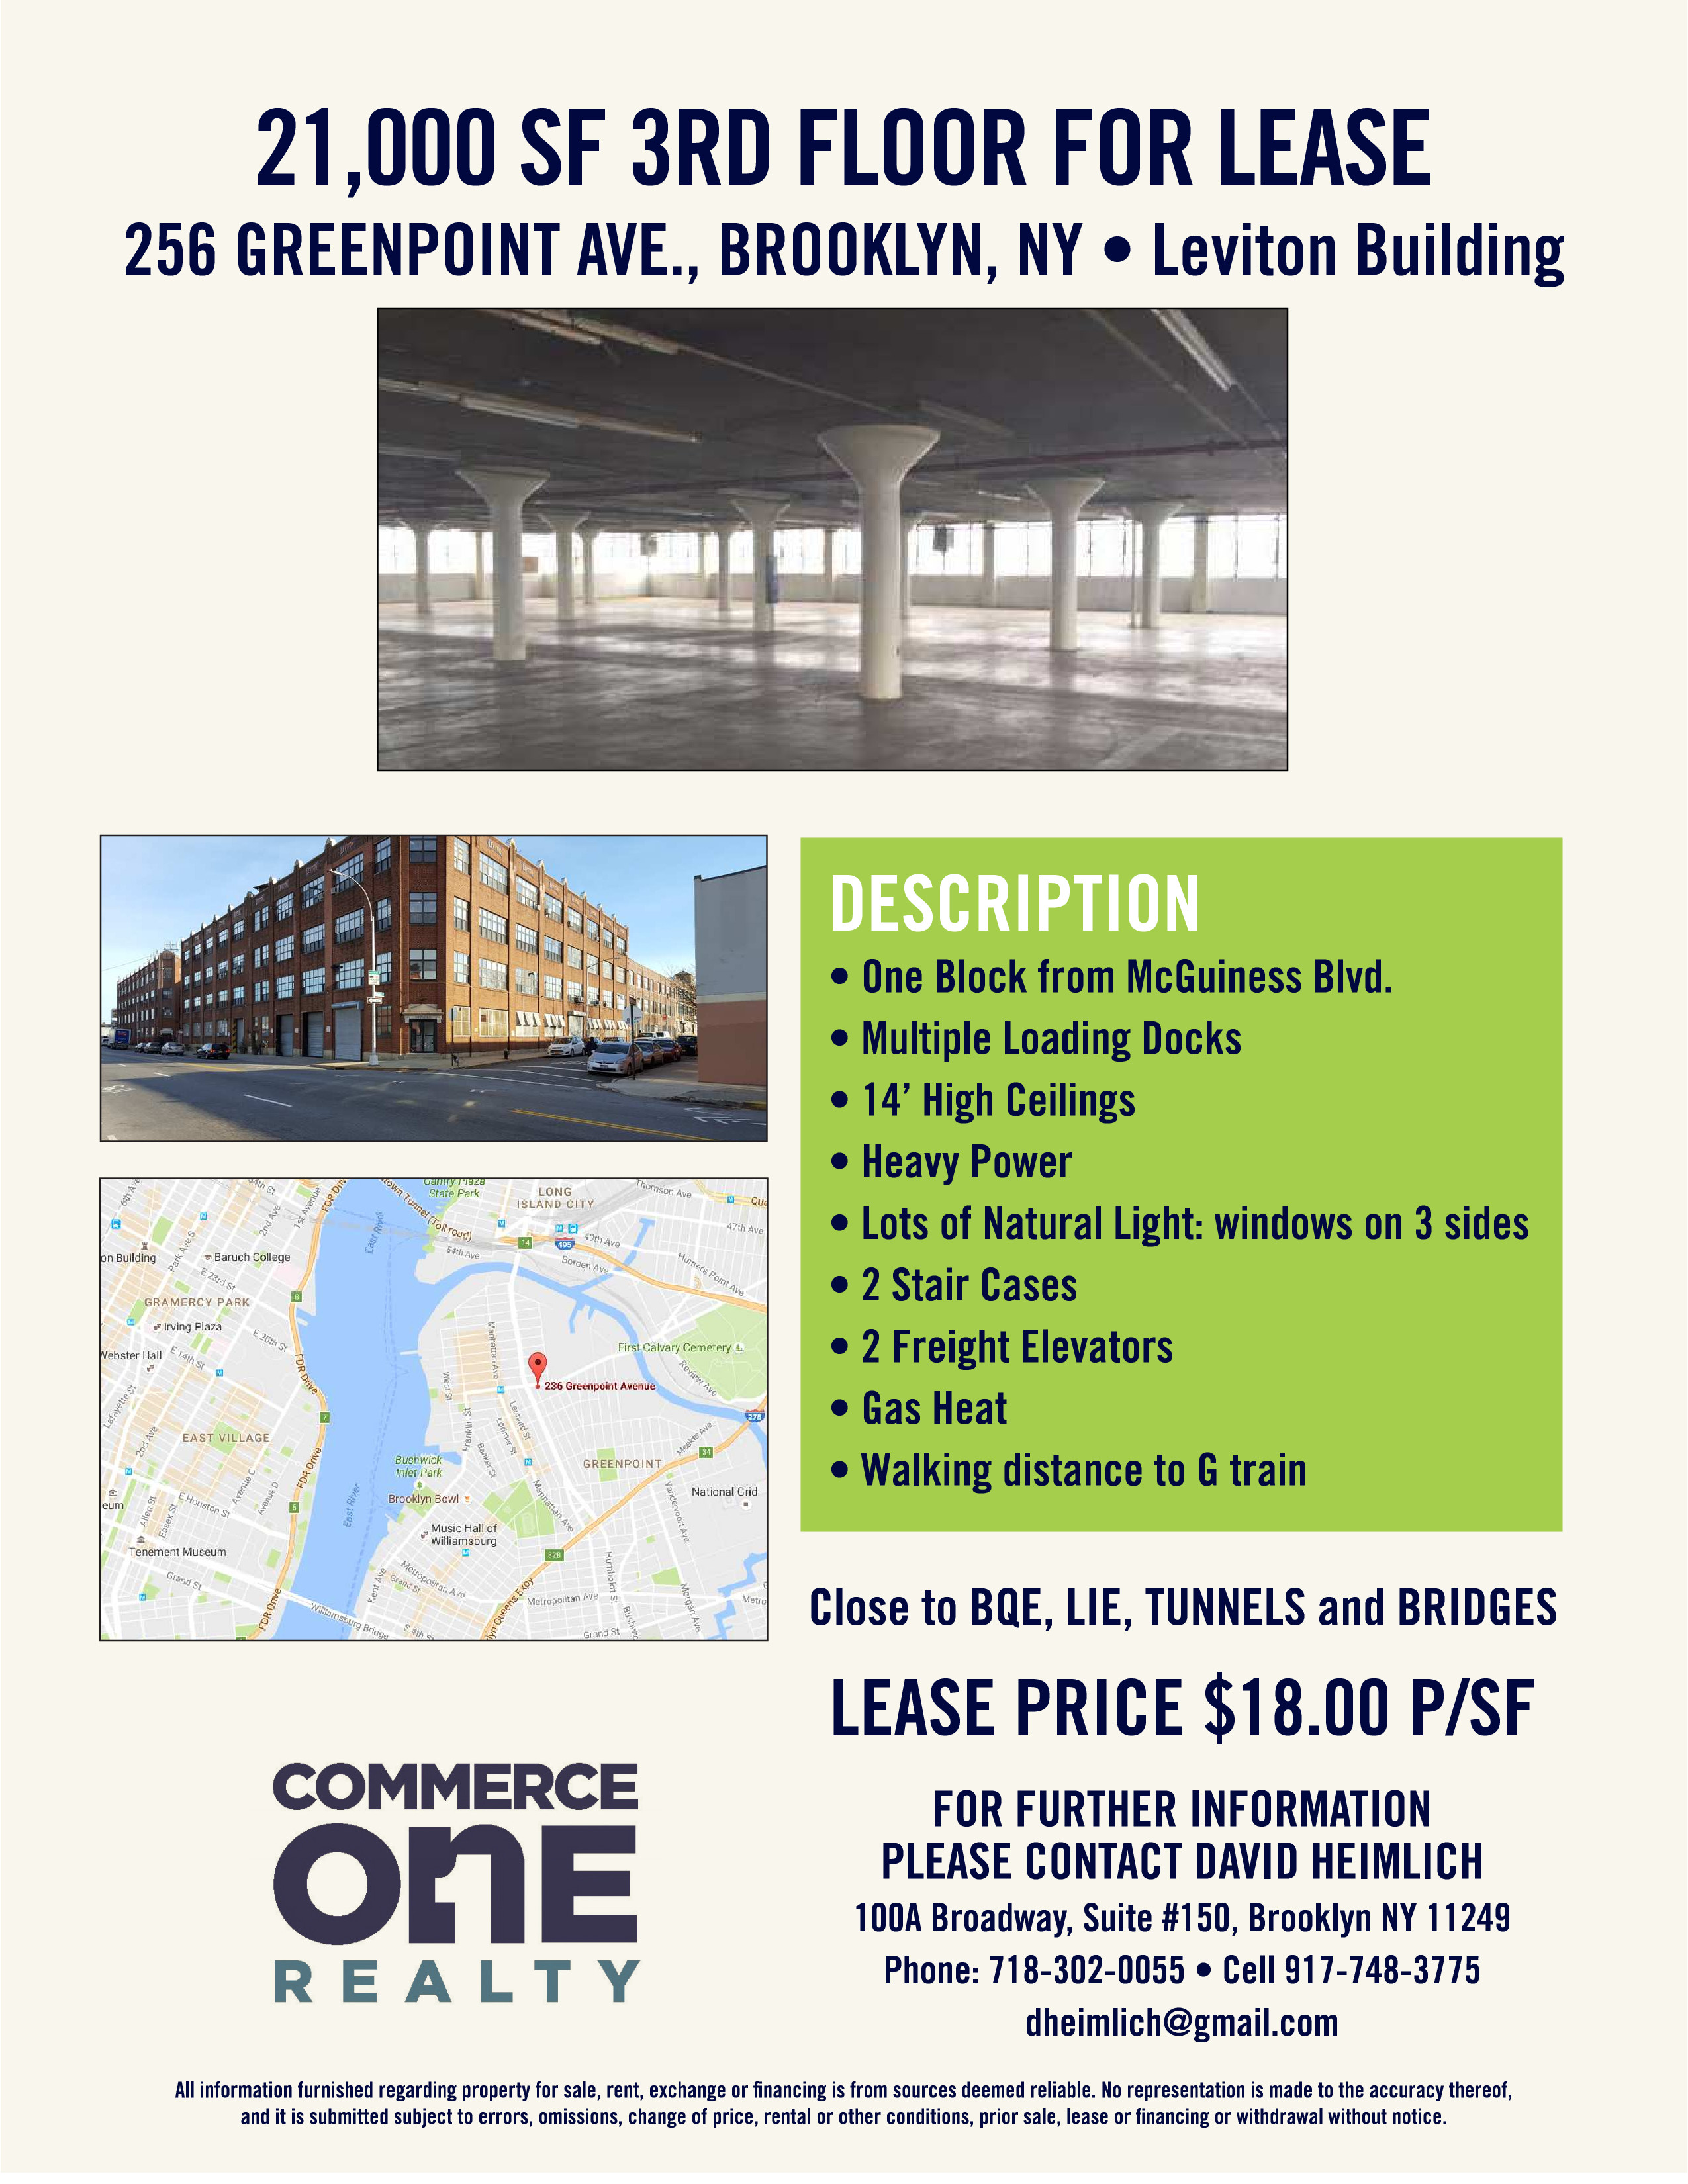 For Lease - Leviton Building 256 Greenpoint Ave, Brooklyn, NY 256